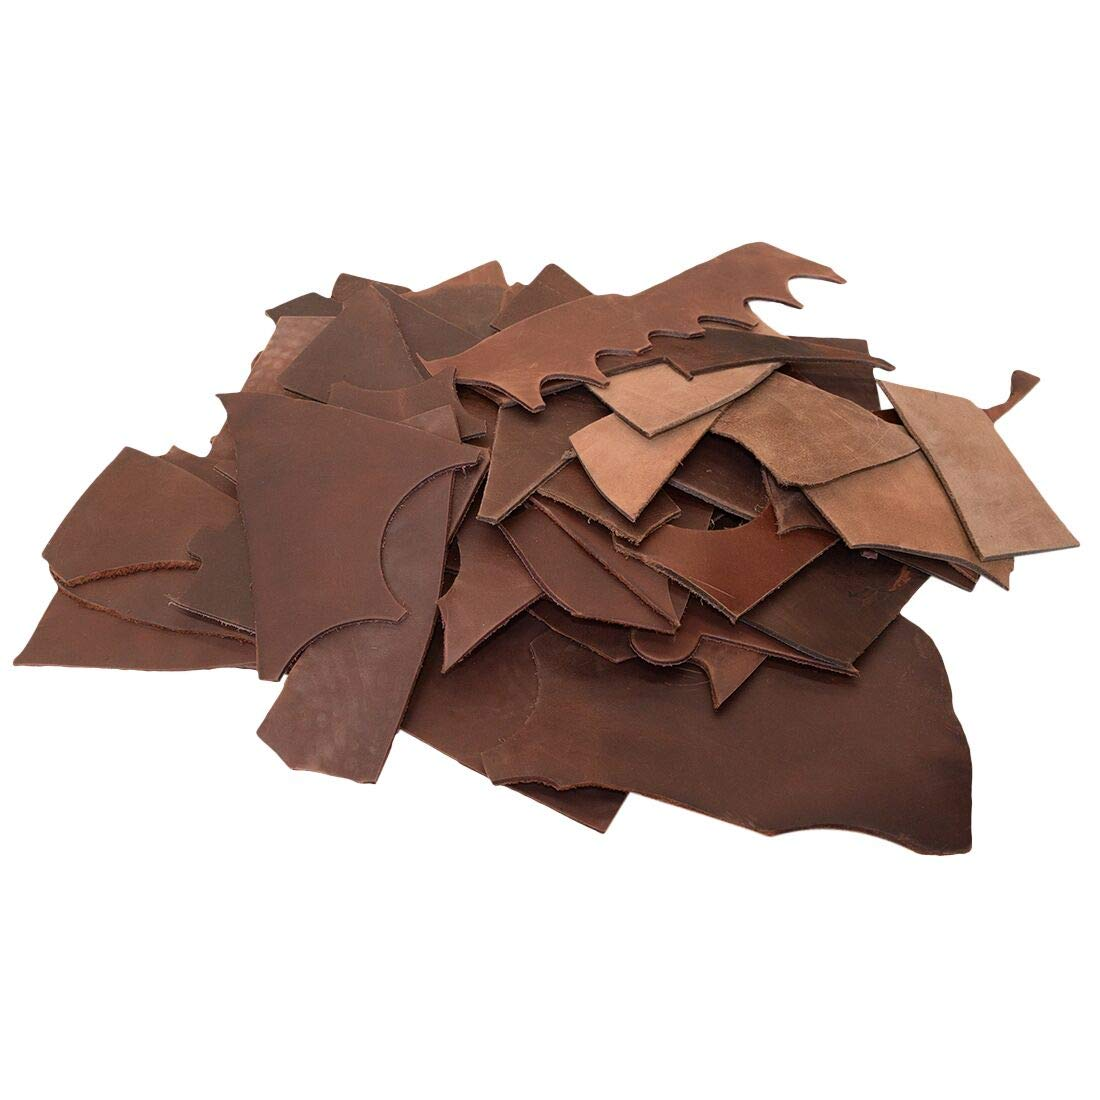 3.5mm Hide /& Drink Craft /& Workshop 4 Pound :: Bourbon Brown Trimming Thick Pieces Cow Leather Chips /& Scraps